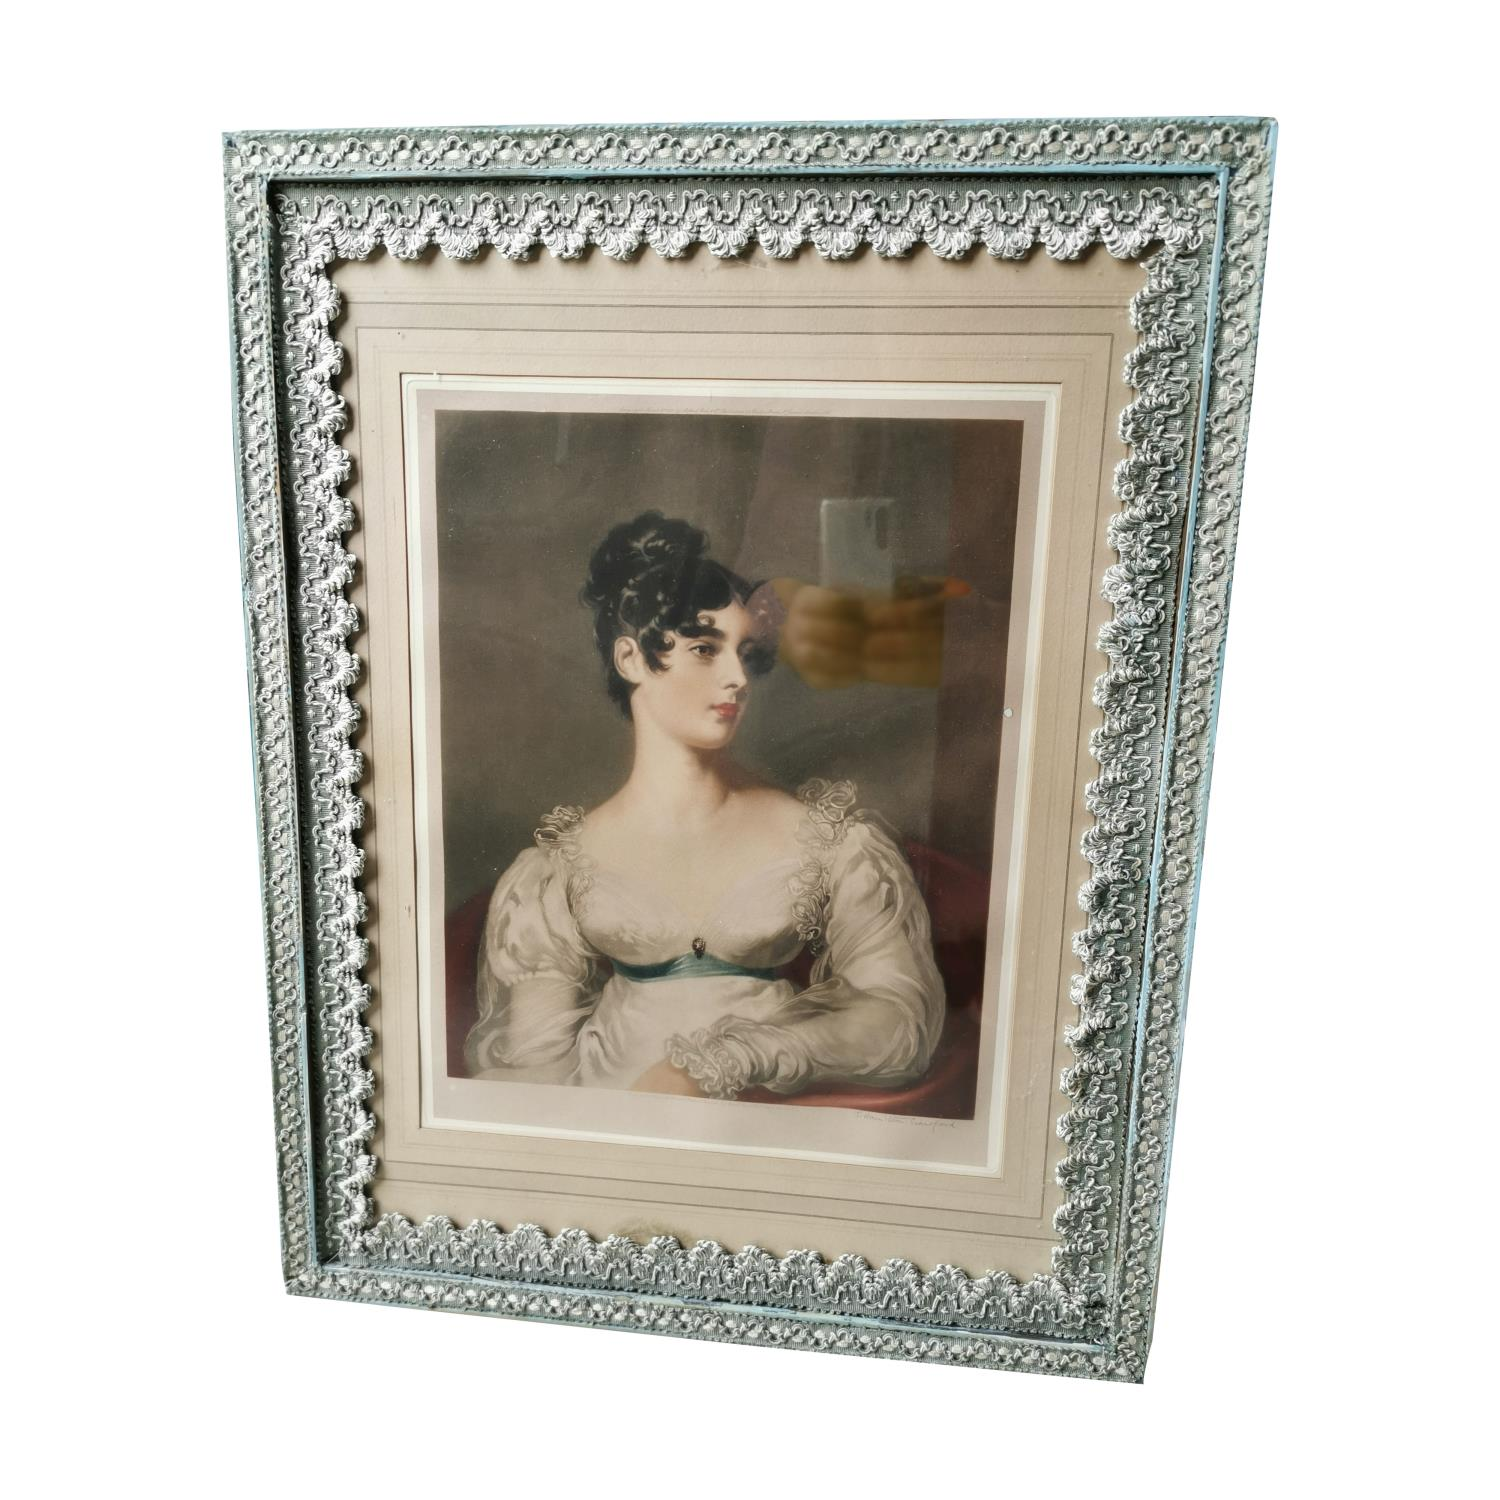 Early 20th C. coloured print portrait of Lady.